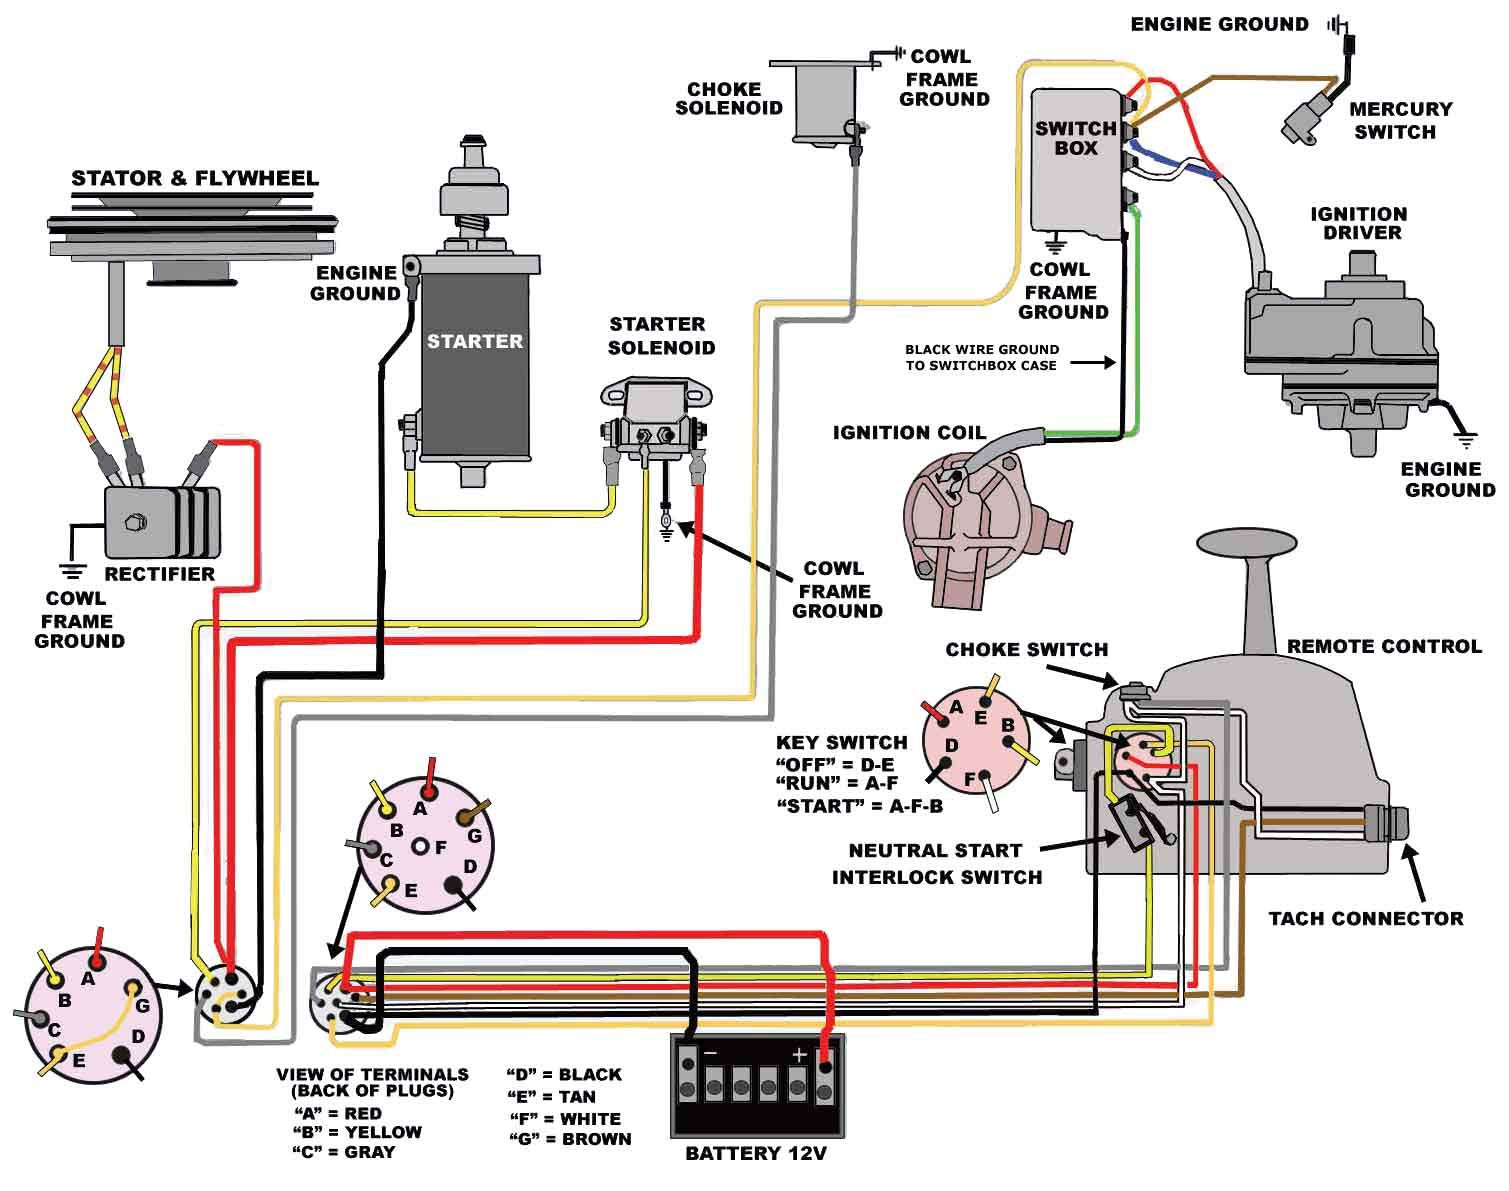 13cfb2d962bcd0c03103625817b7d51d mercury outboard wiring diagram diagram pinterest mercury  at webbmarketing.co